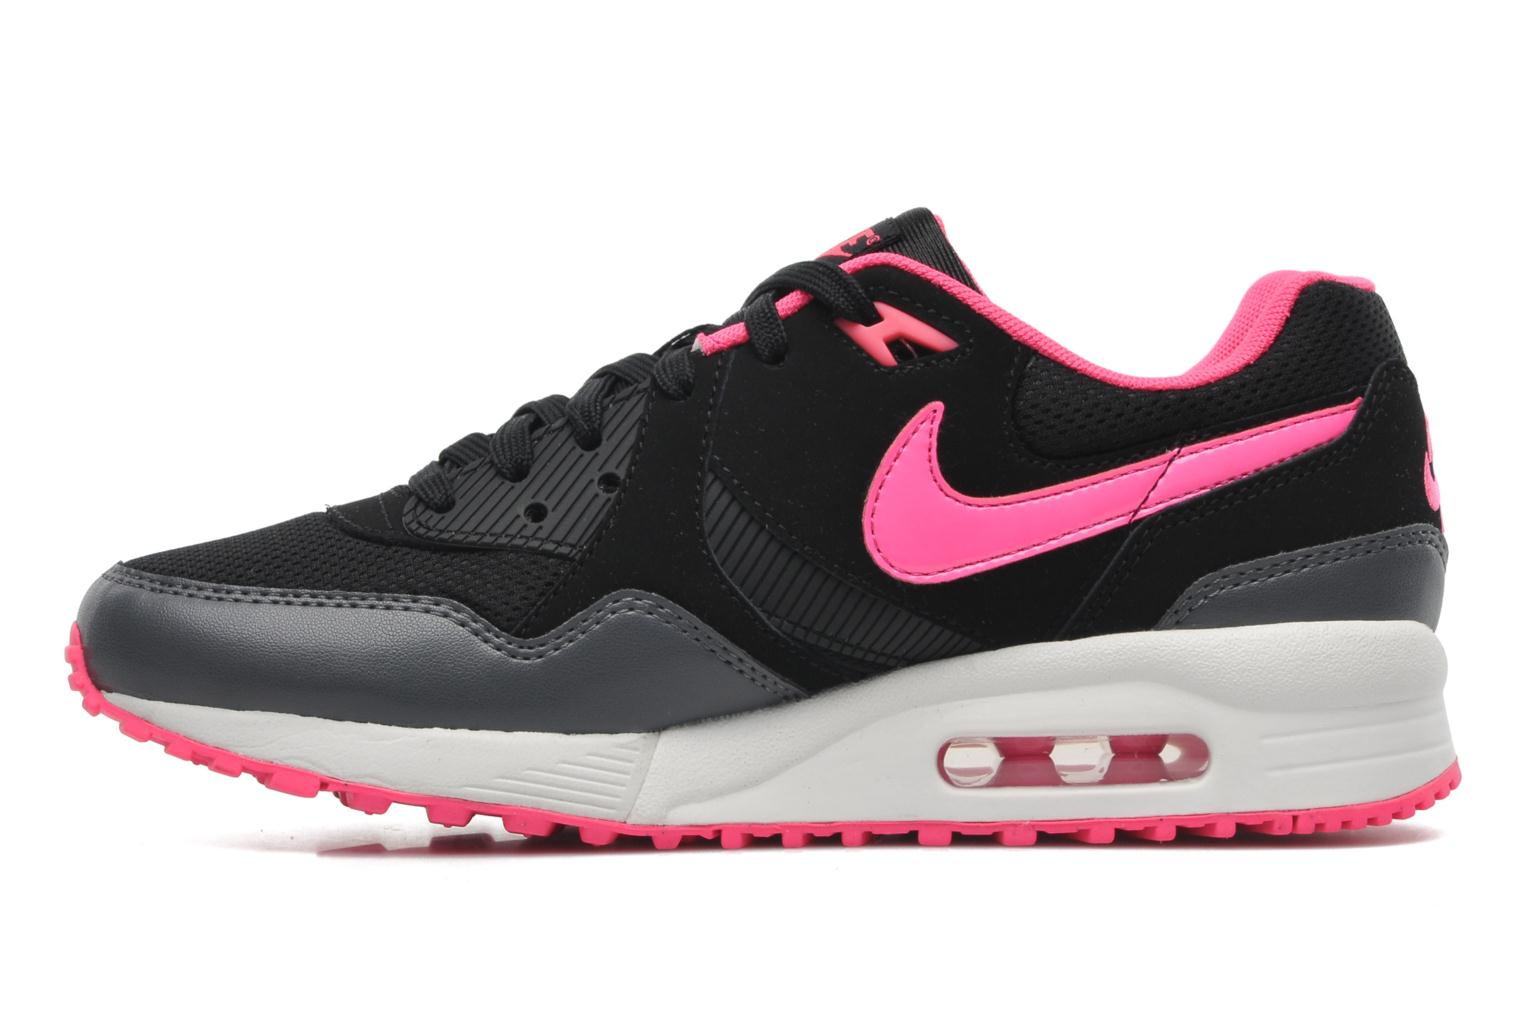 nike air max light dames timberland 6in premium boot femme. Black Bedroom Furniture Sets. Home Design Ideas